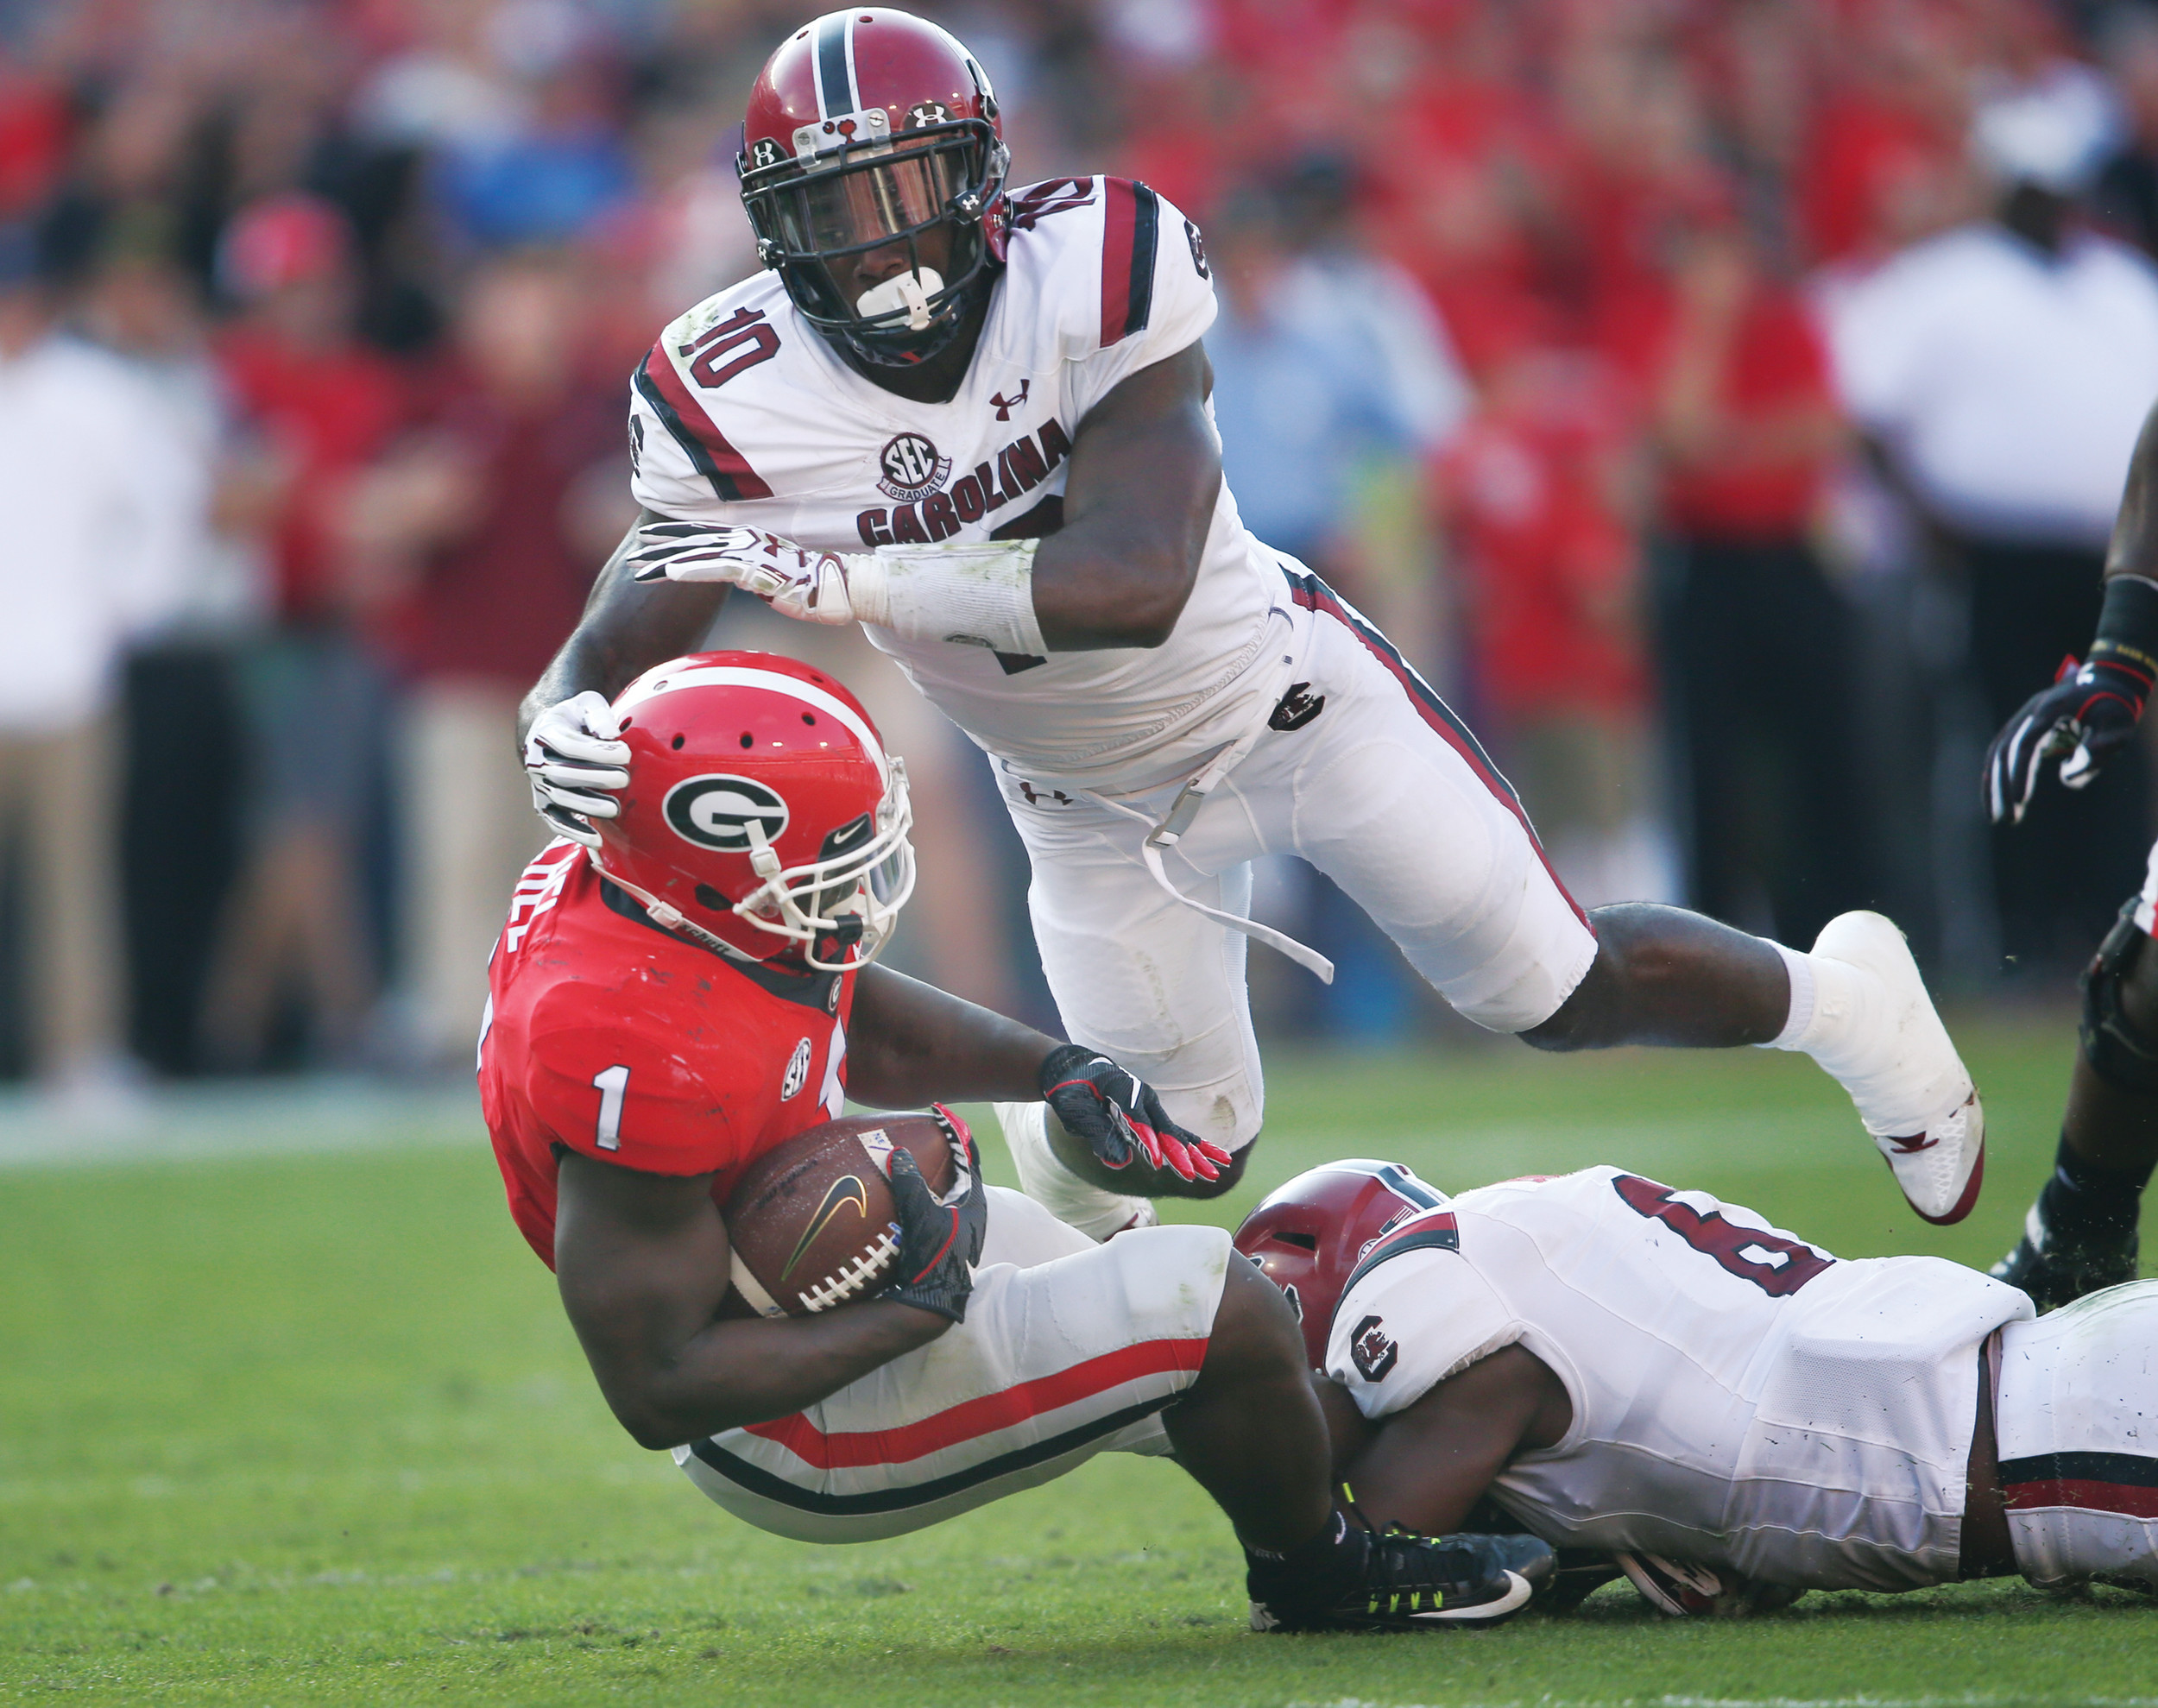 Georgia running back Sony Michel (1) is tackled by South Carolina linebackers Skai Moore (10) and T.J. Brunson (6) during the Bulldogs' 24-10 victory on Saturday in Athens, Georgia.